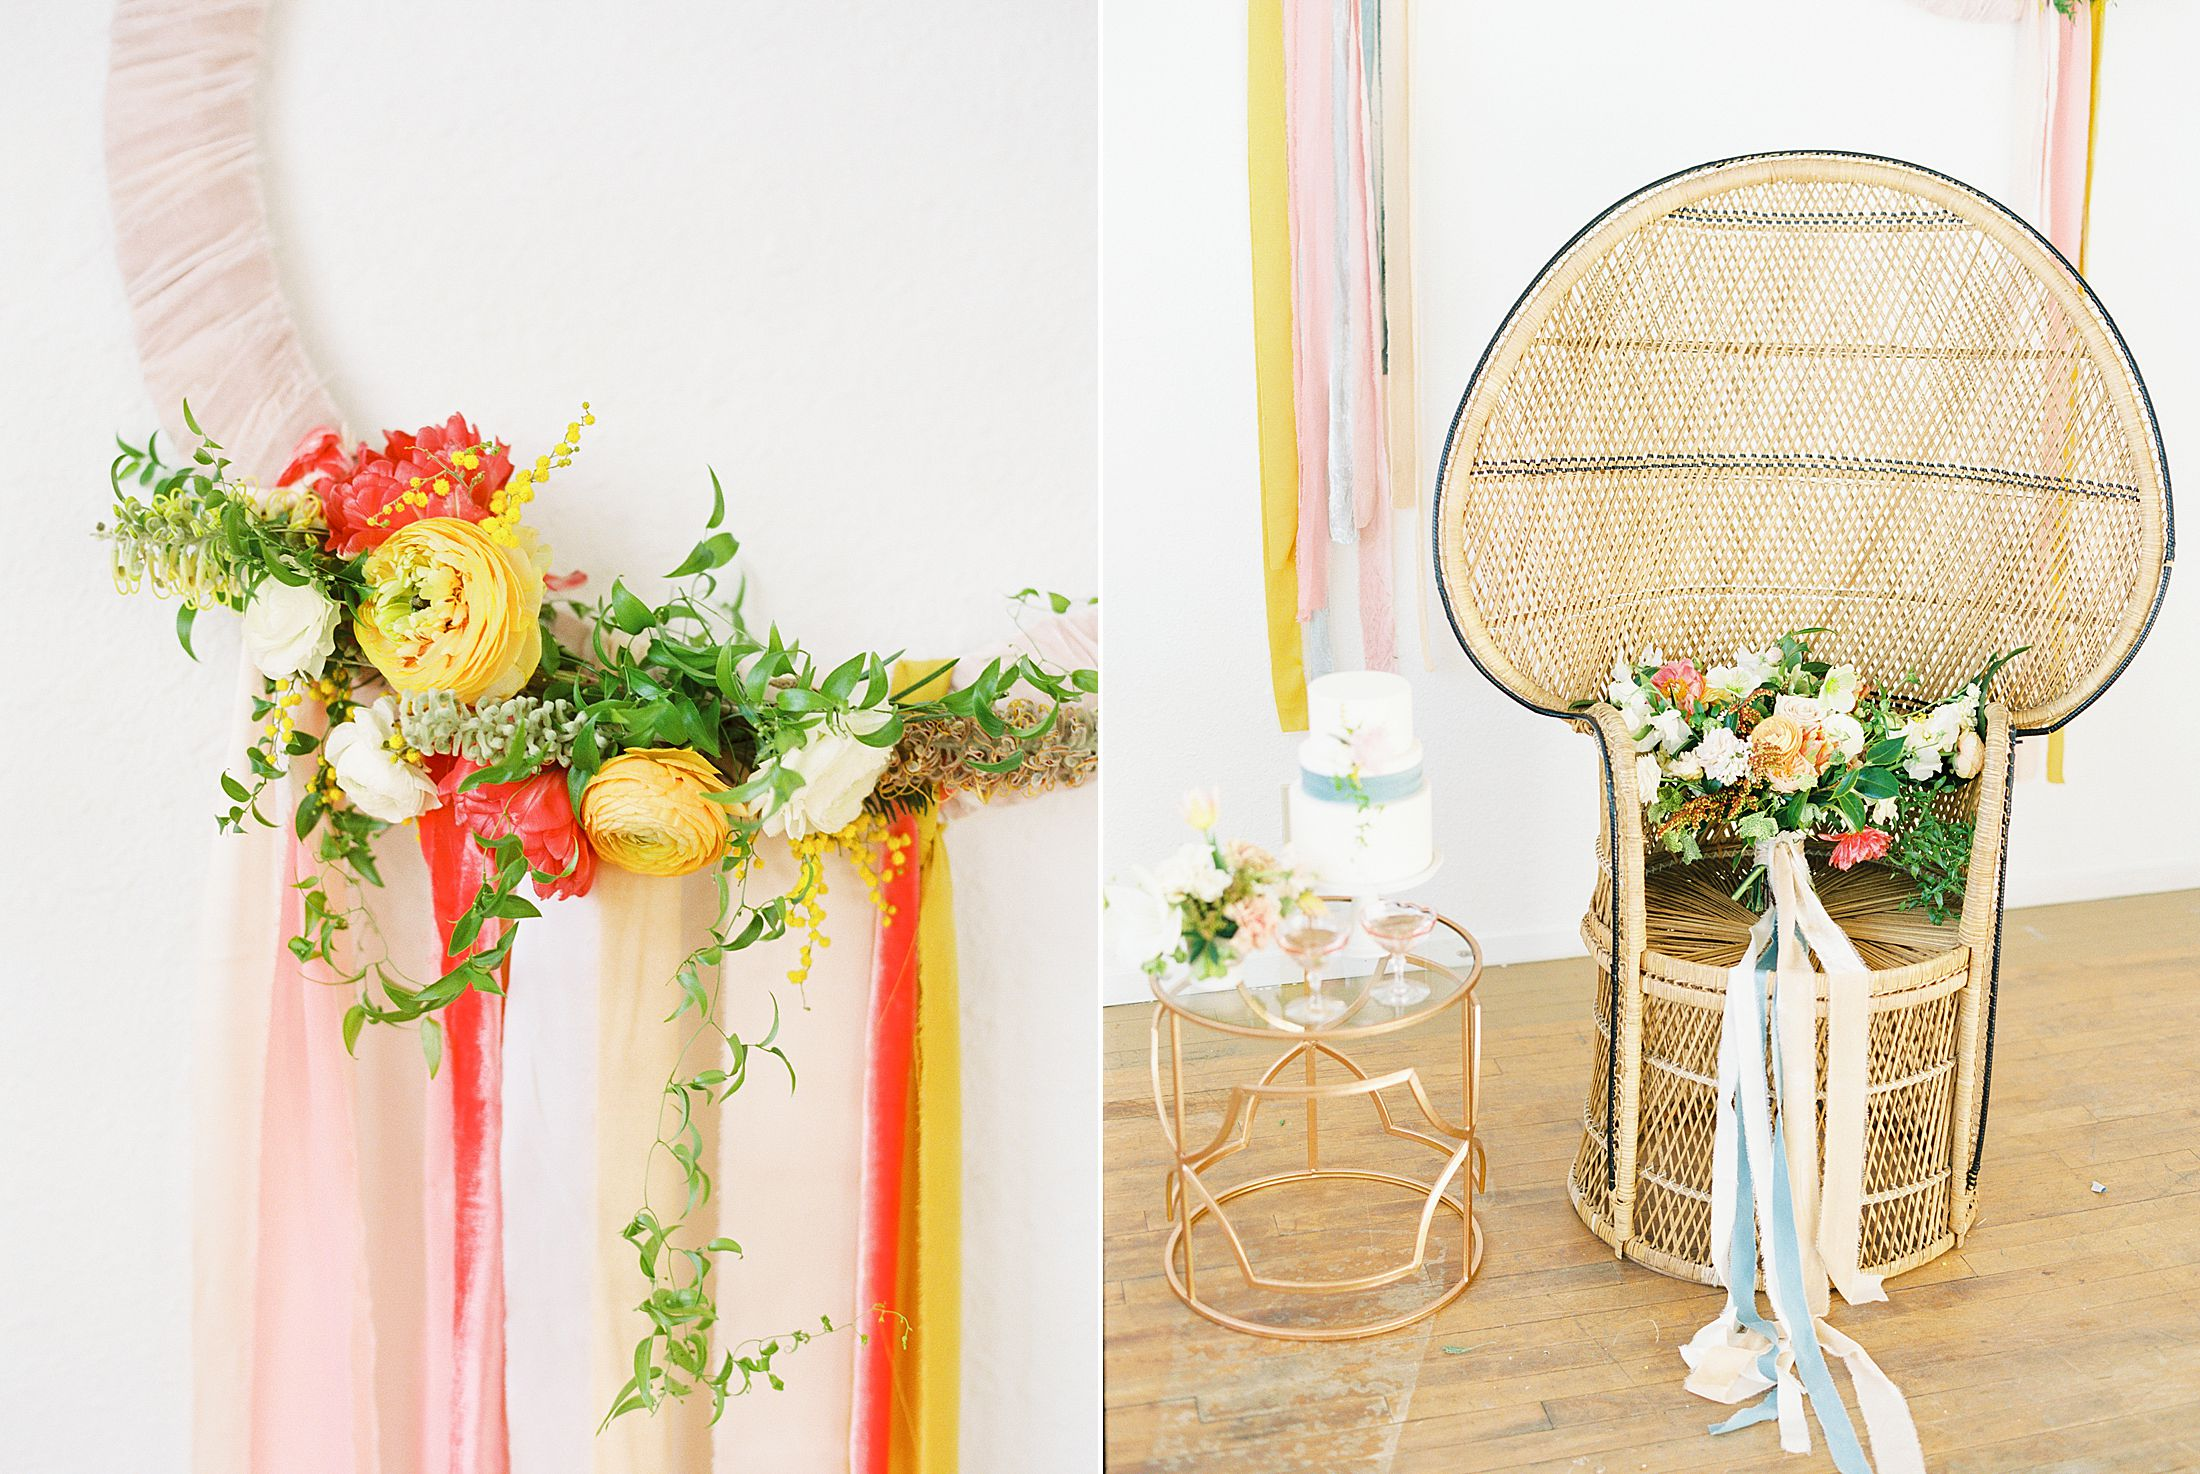 Bay Area Spring Wedding Inspiration - Ashley Baumgartner - Inspired By This - Party Crush Studio and Lens of Lenox Videography - Bay Area Wedding Photography_0039.jpg